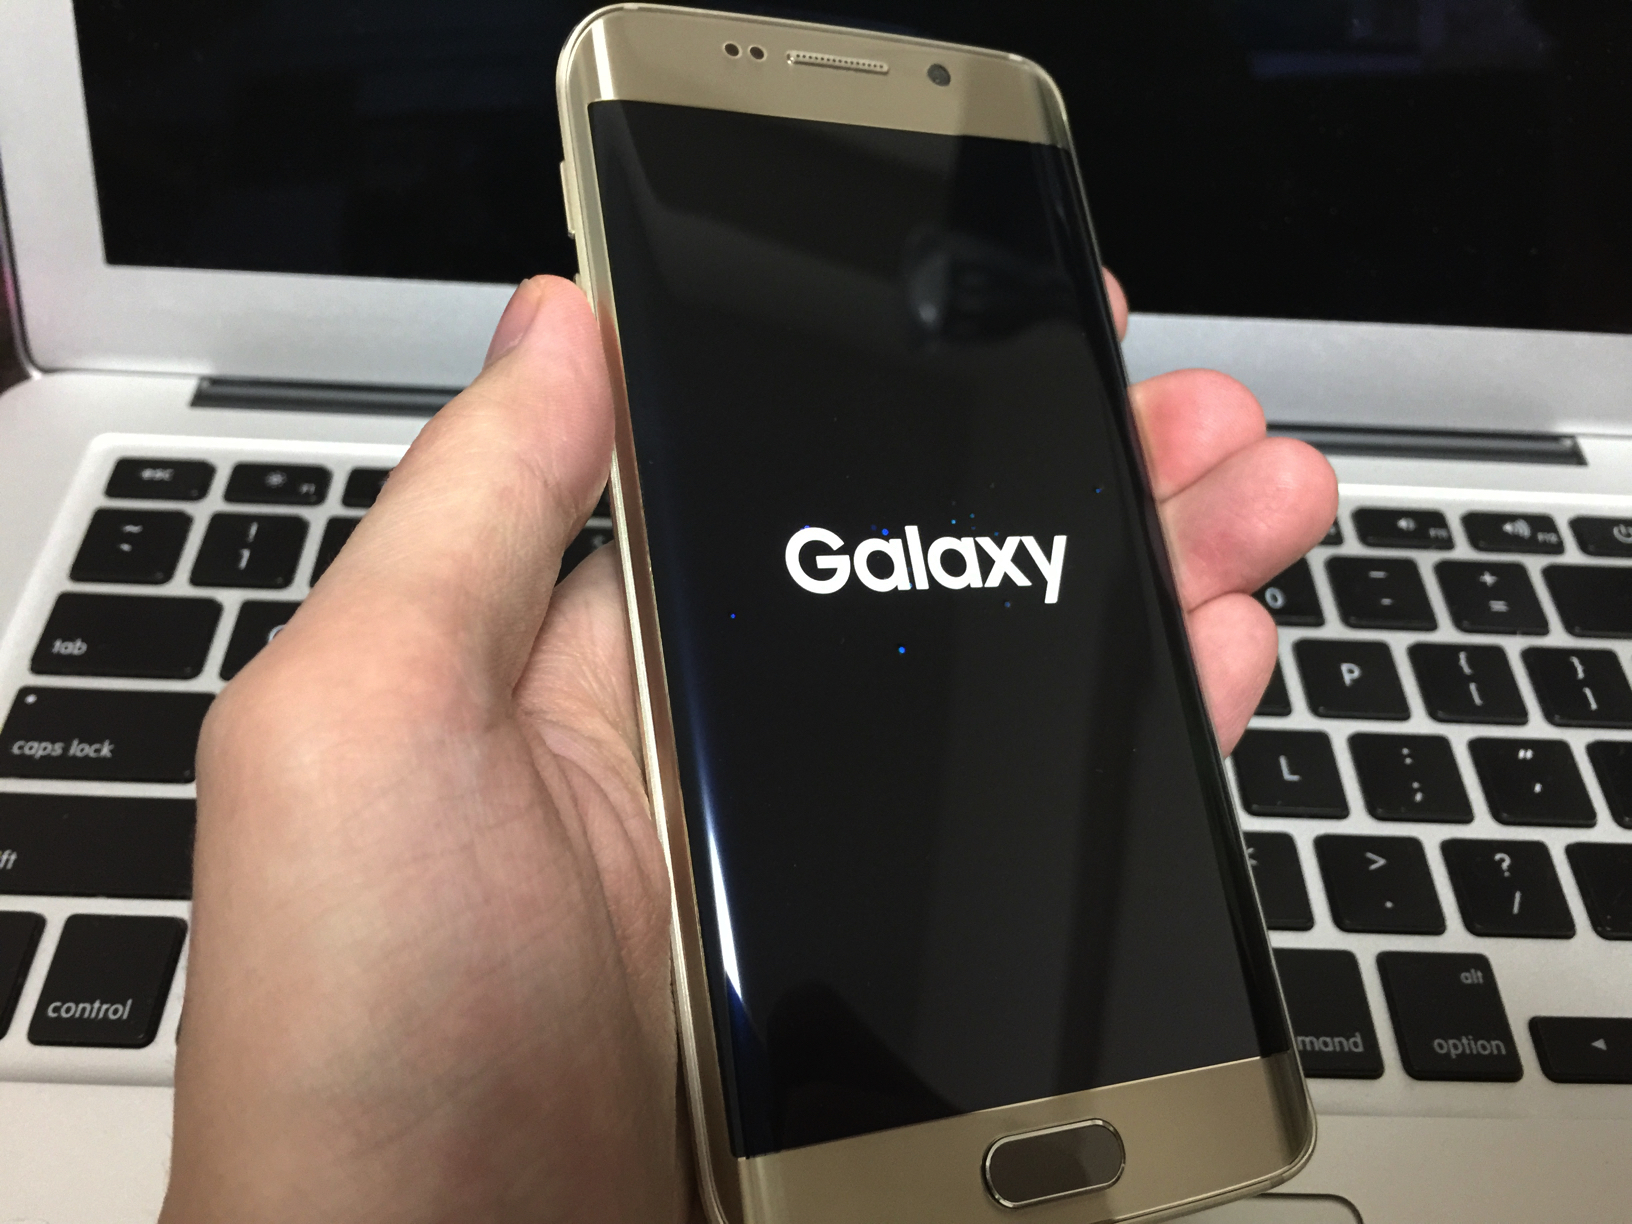 docomo版Galaxy S6 edge SC-04Gを1ヶ月間お借りします